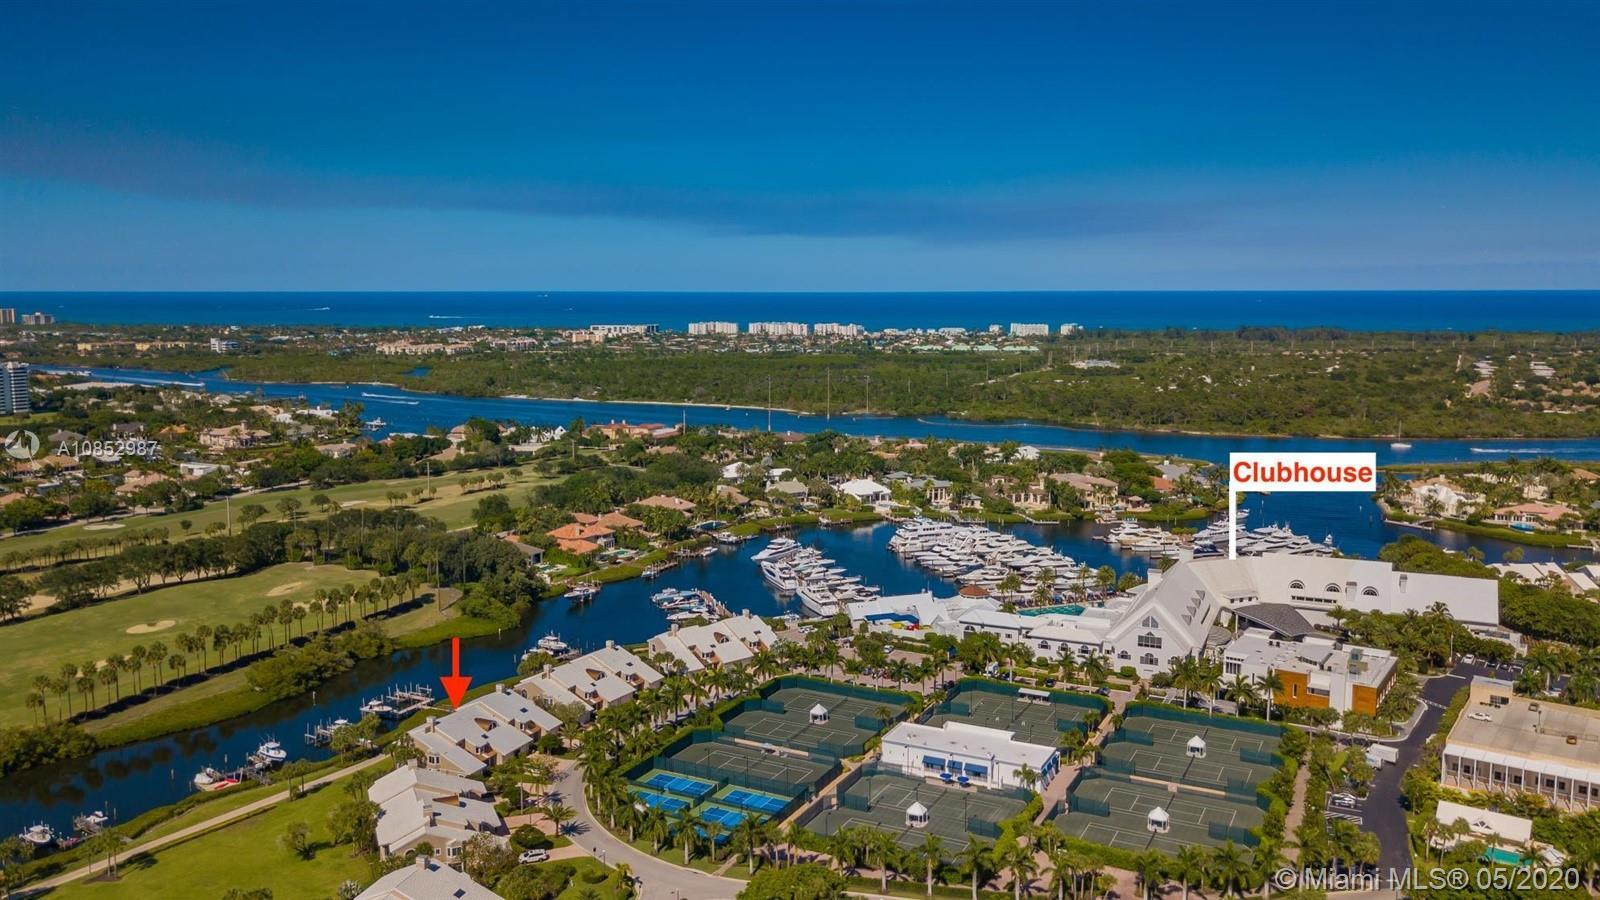 BEST LOCATION! Experience all that exclusive Admirals Cove has to offer from this rare 3-bedroom, 2n